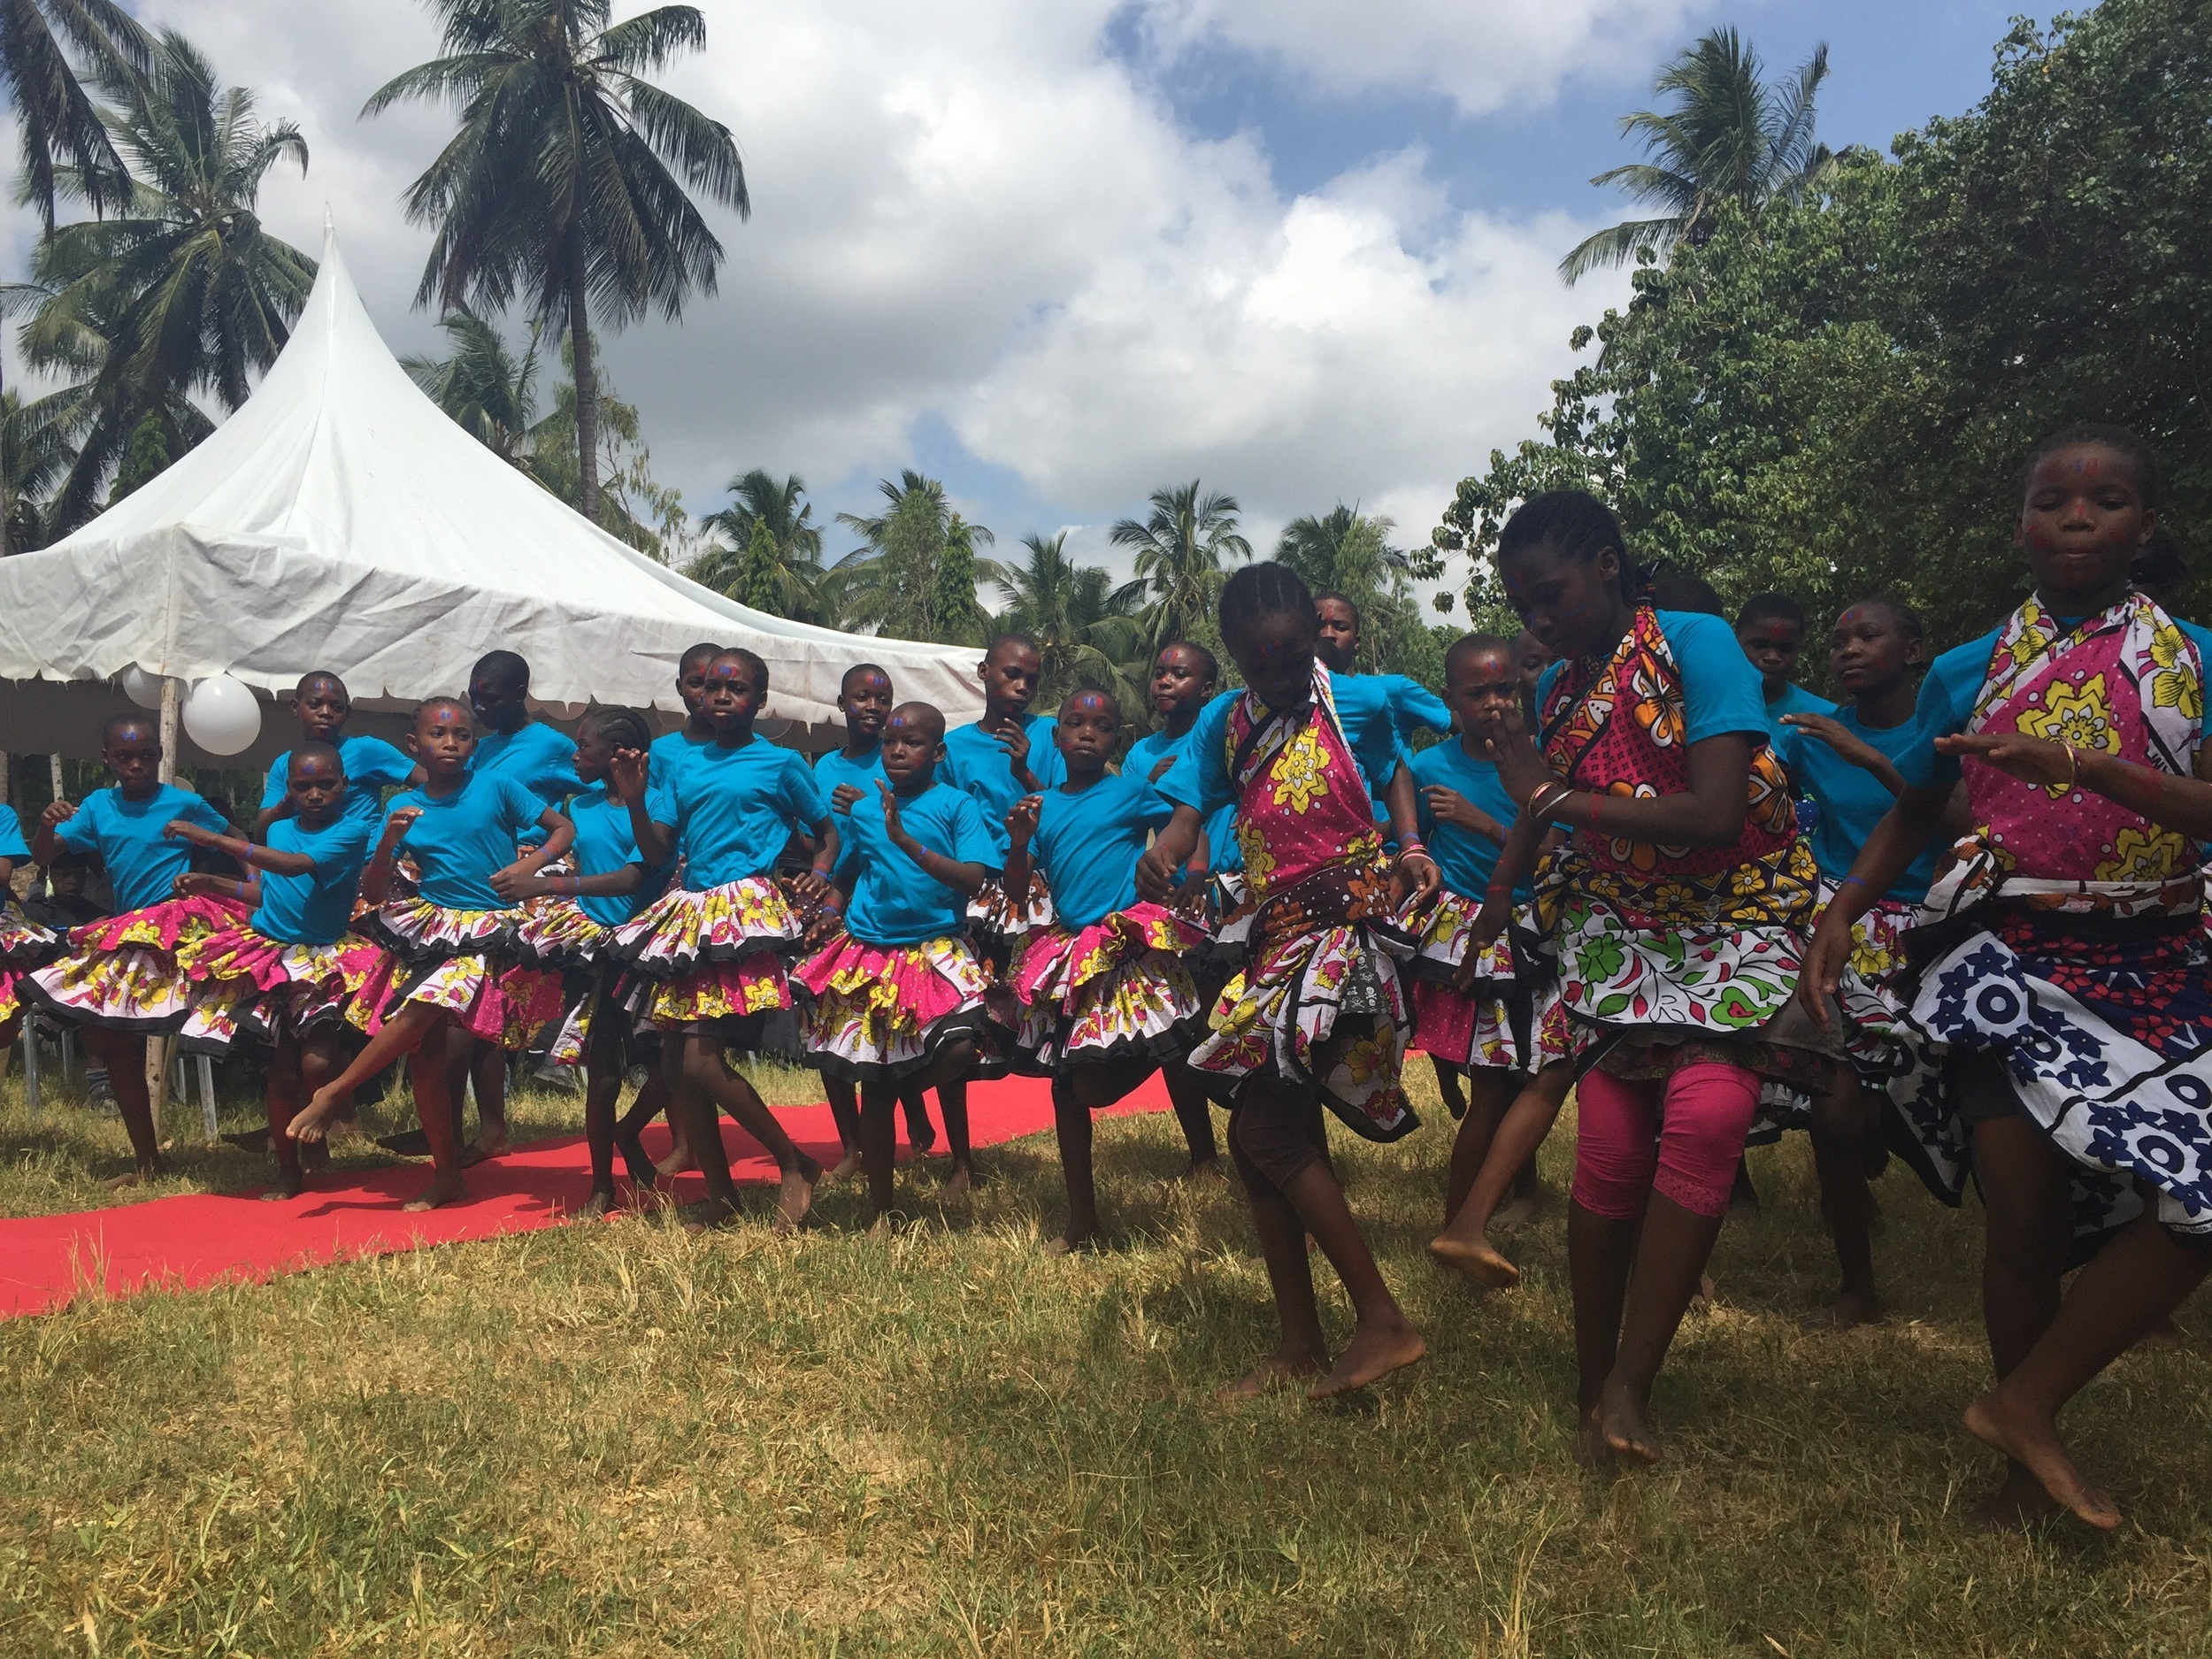 The school dance troupe performed a very energetic traditional Kenyan dance.